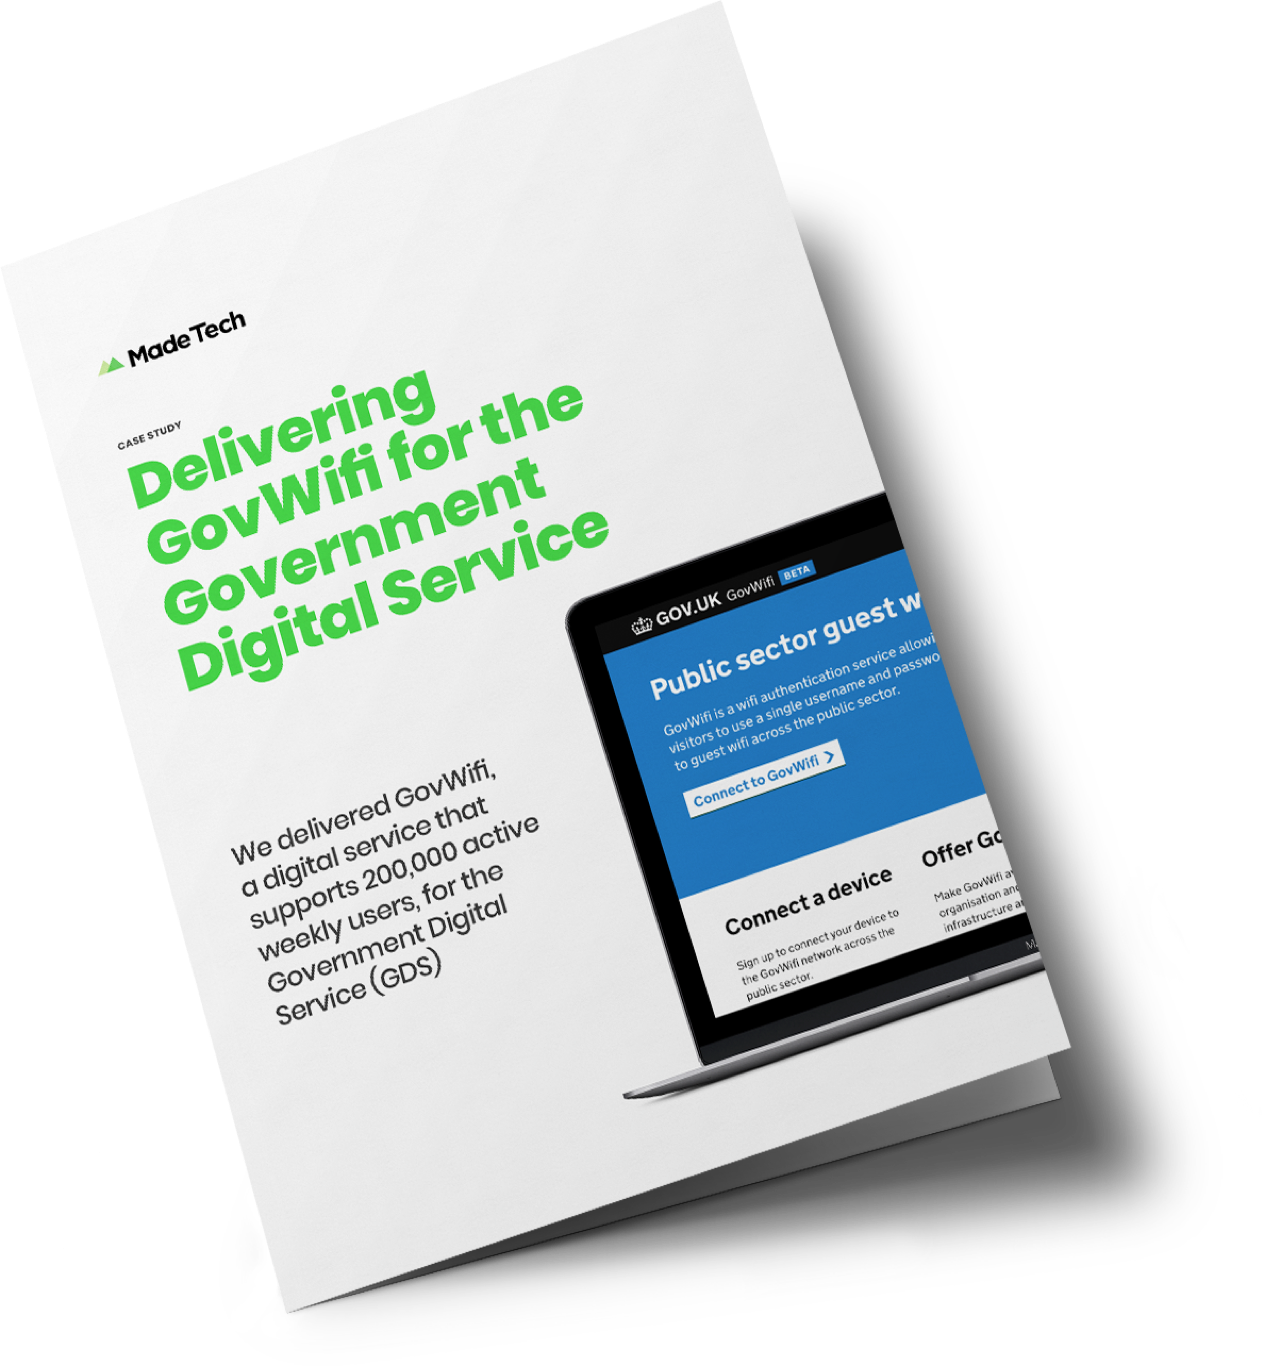 Delivering GovWifi for the Government Digital Service case study cover